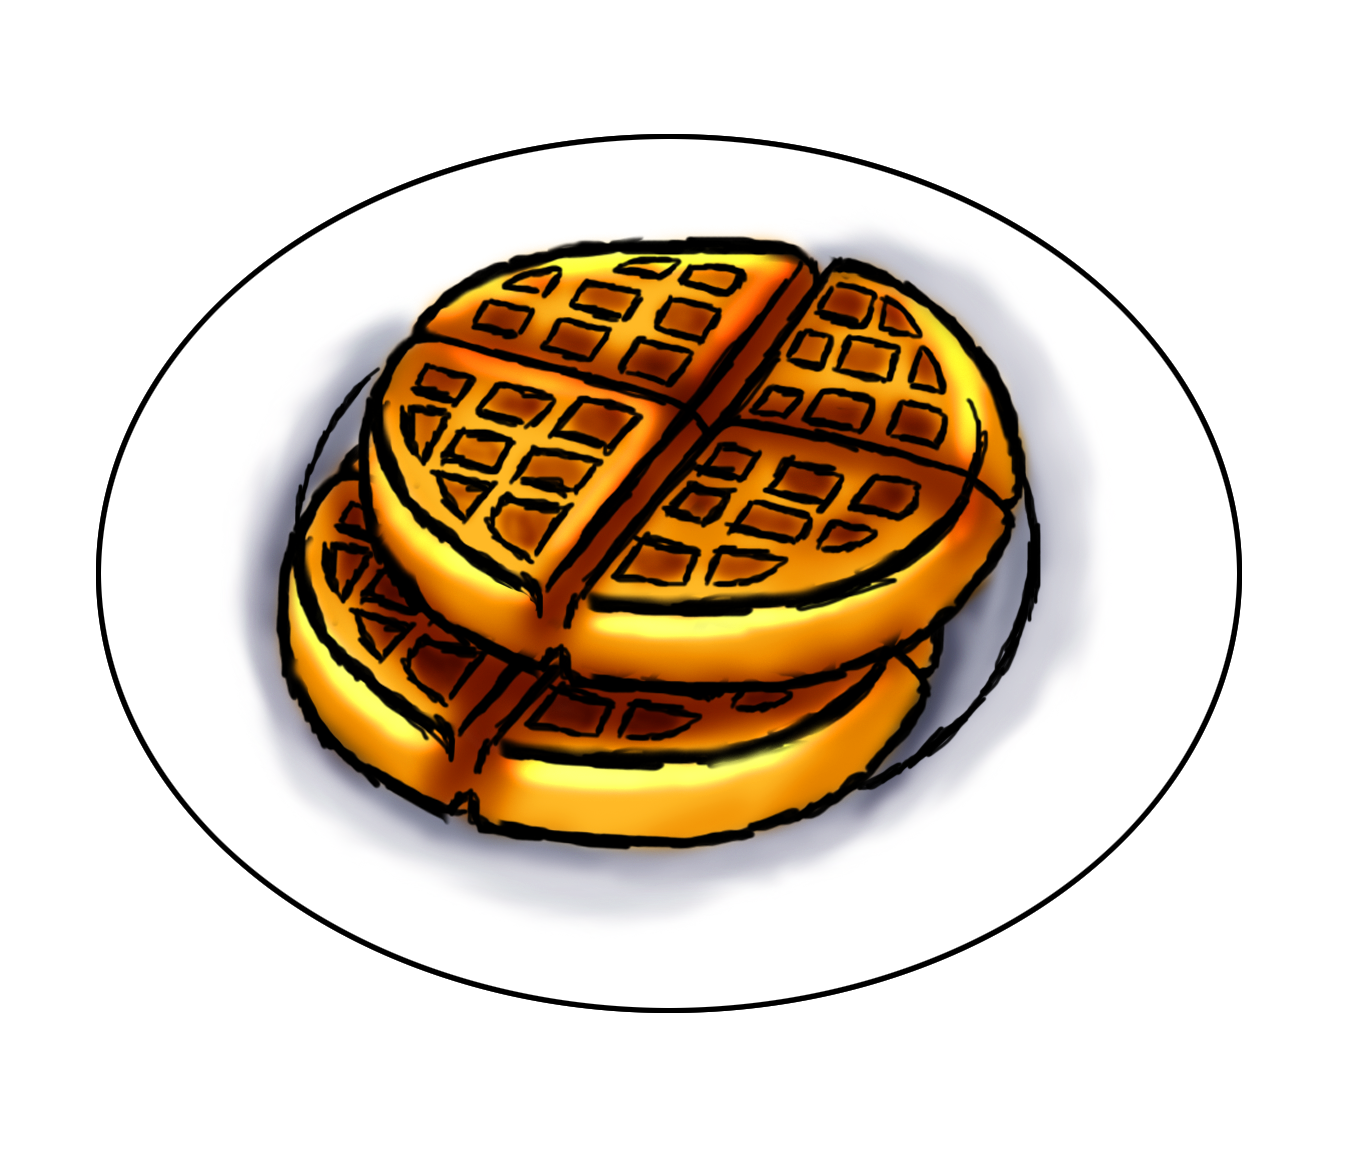 clipart royalty free stock Waffles clipart. Waffle free on dumielauxepices